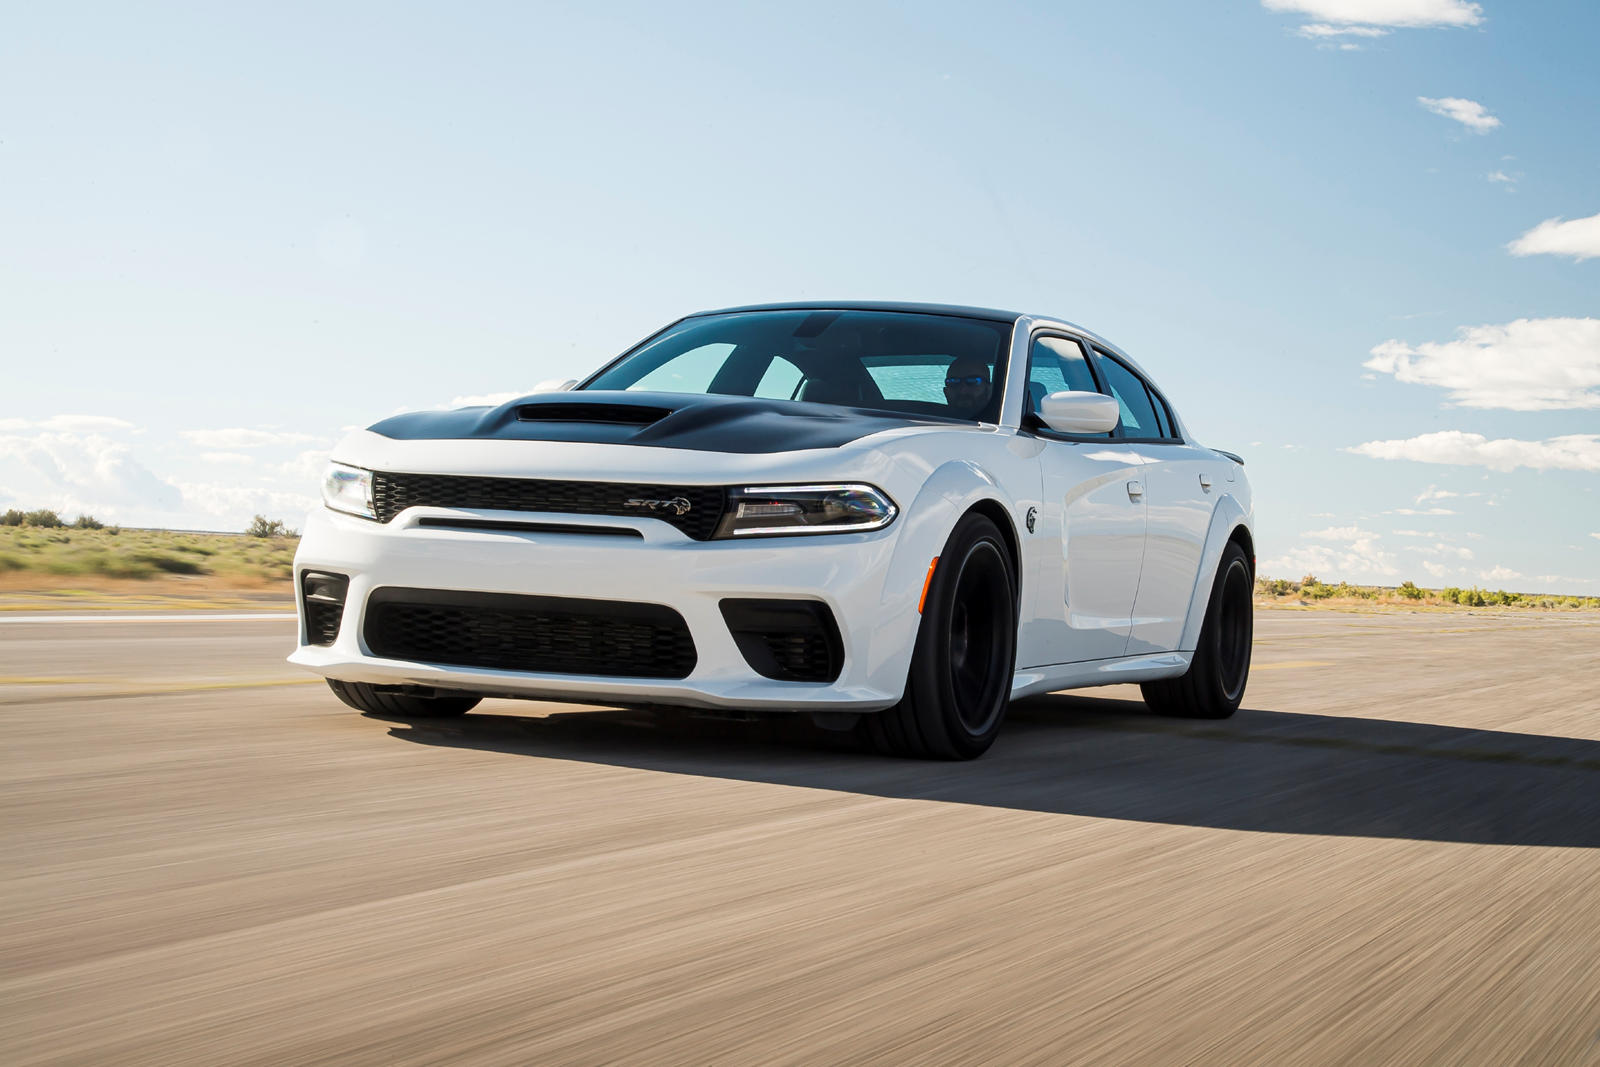 2021 Dodge Charger Srt Hellcat Review Trims Specs Price New Interior Features Exterior Design And Specifications Carbuzz